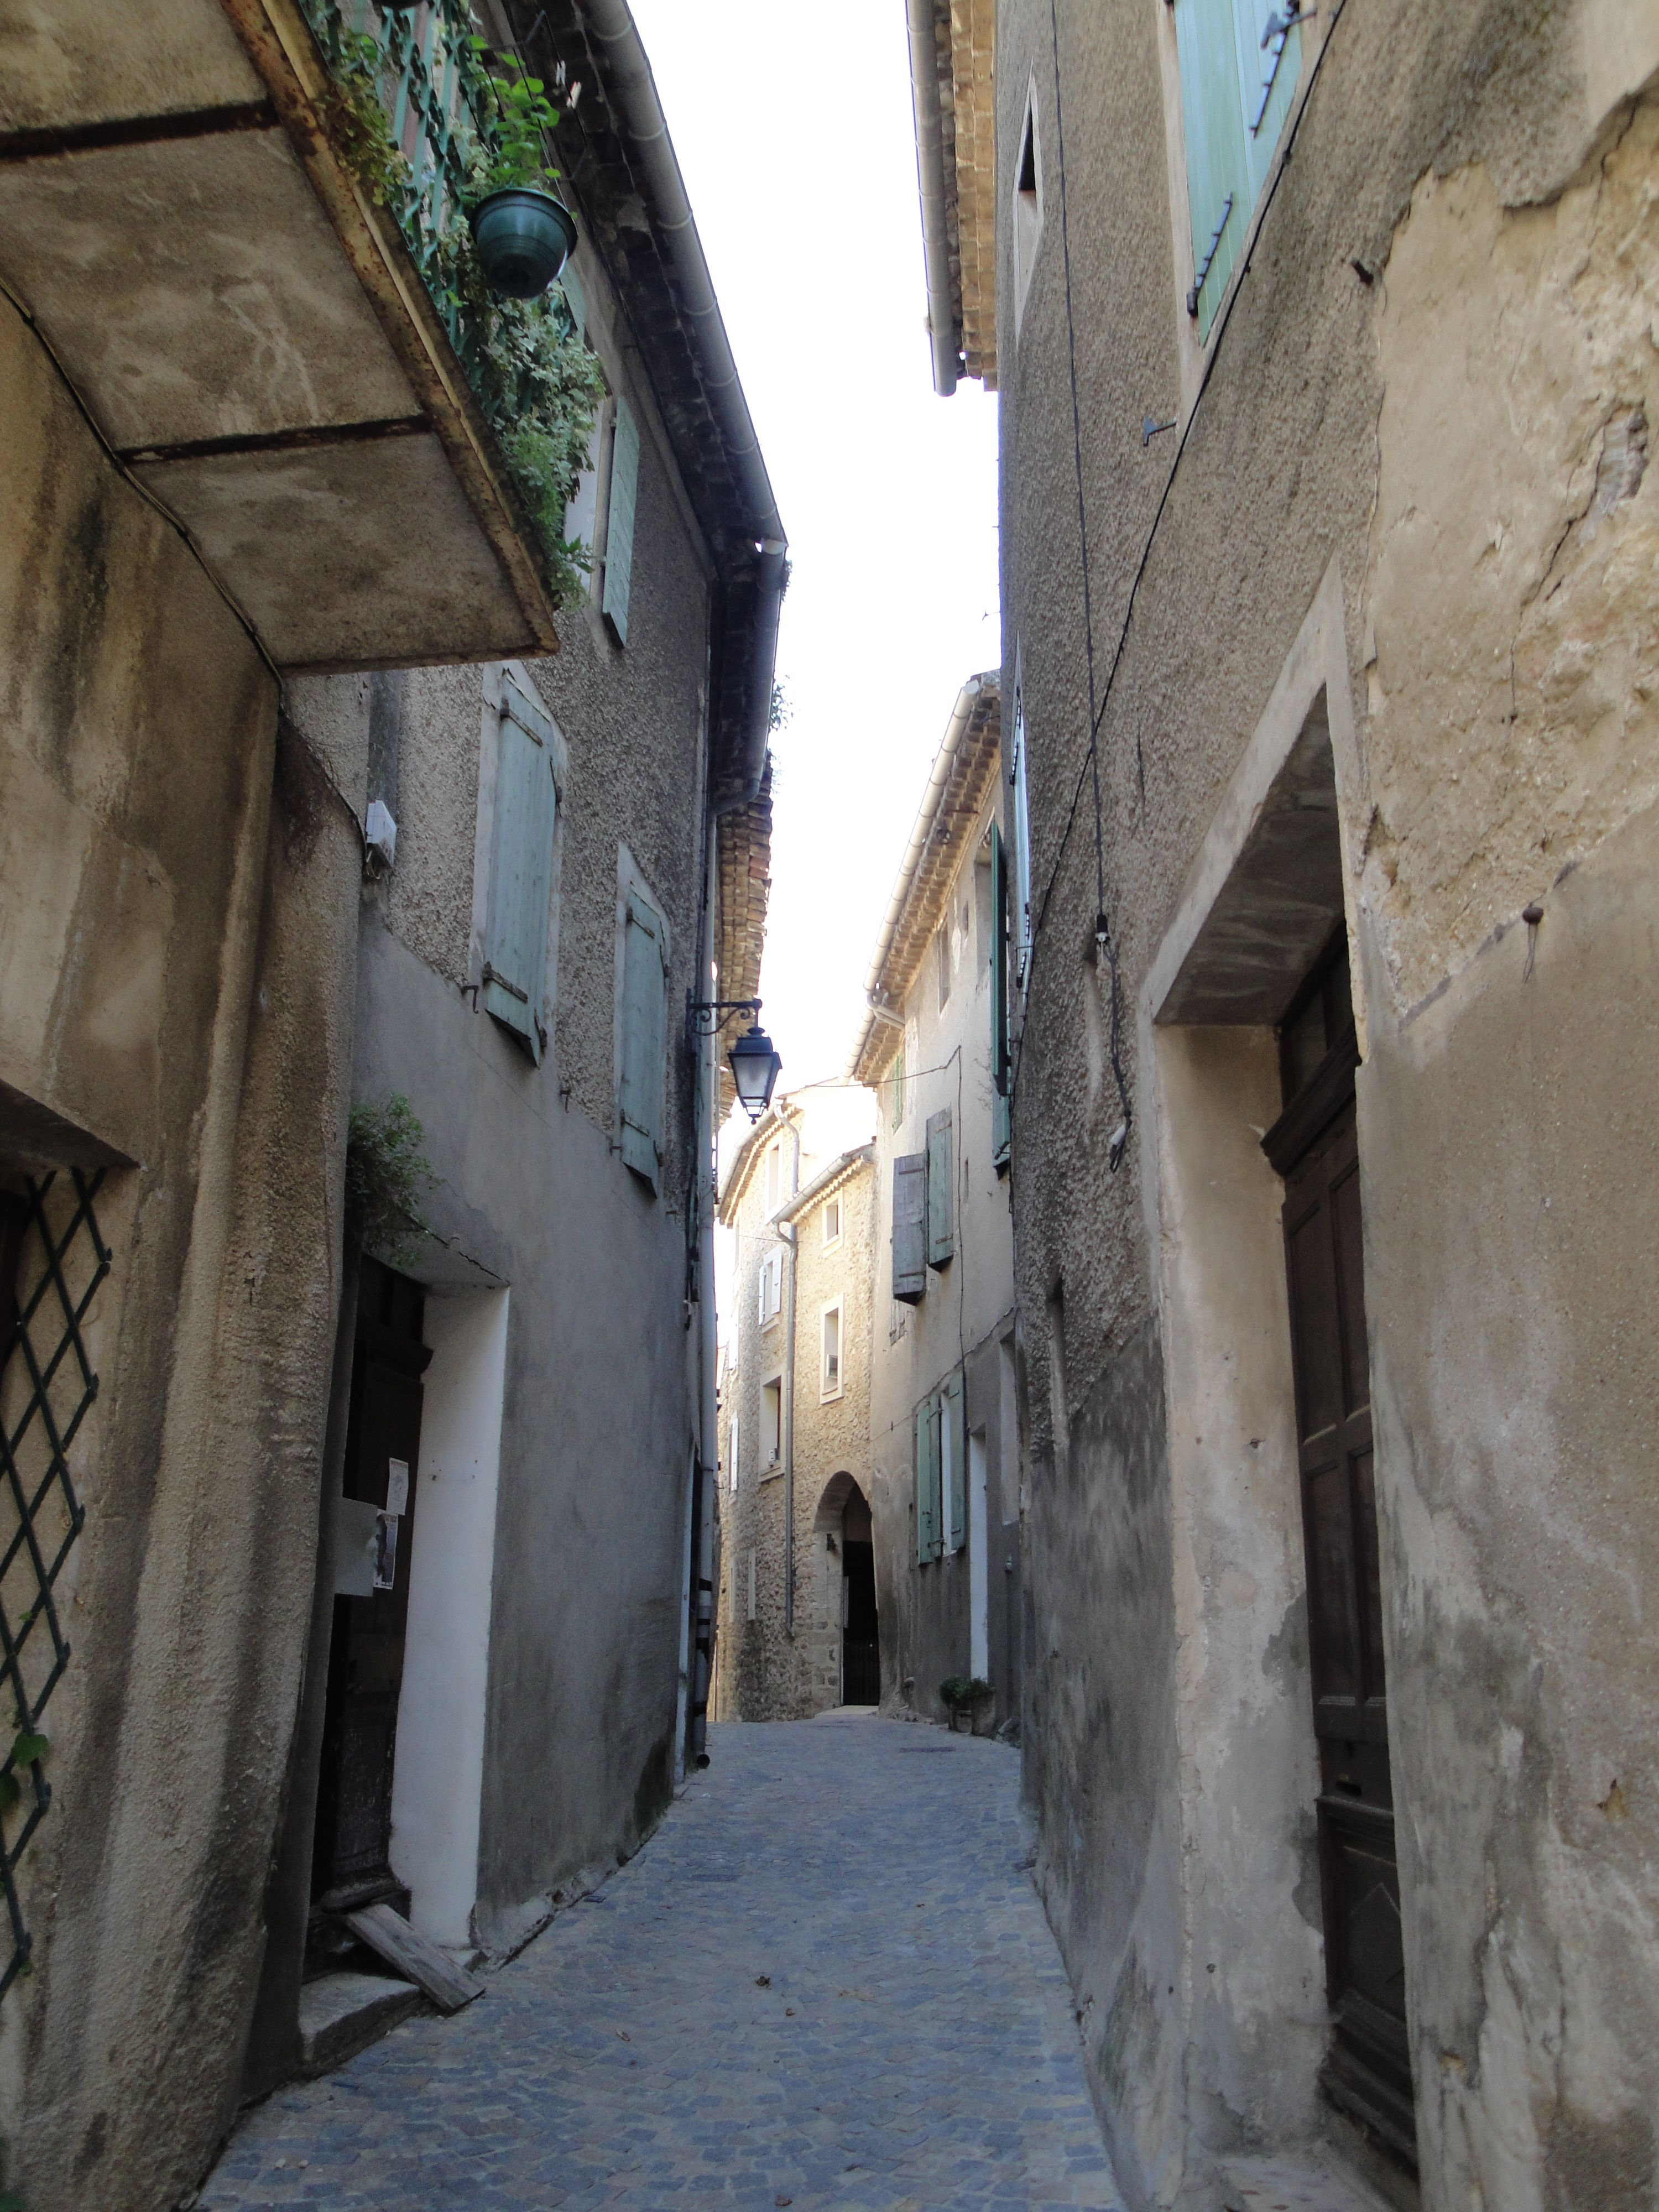 The street where we stayed for a few days in Mollans-sur-Oveze, France